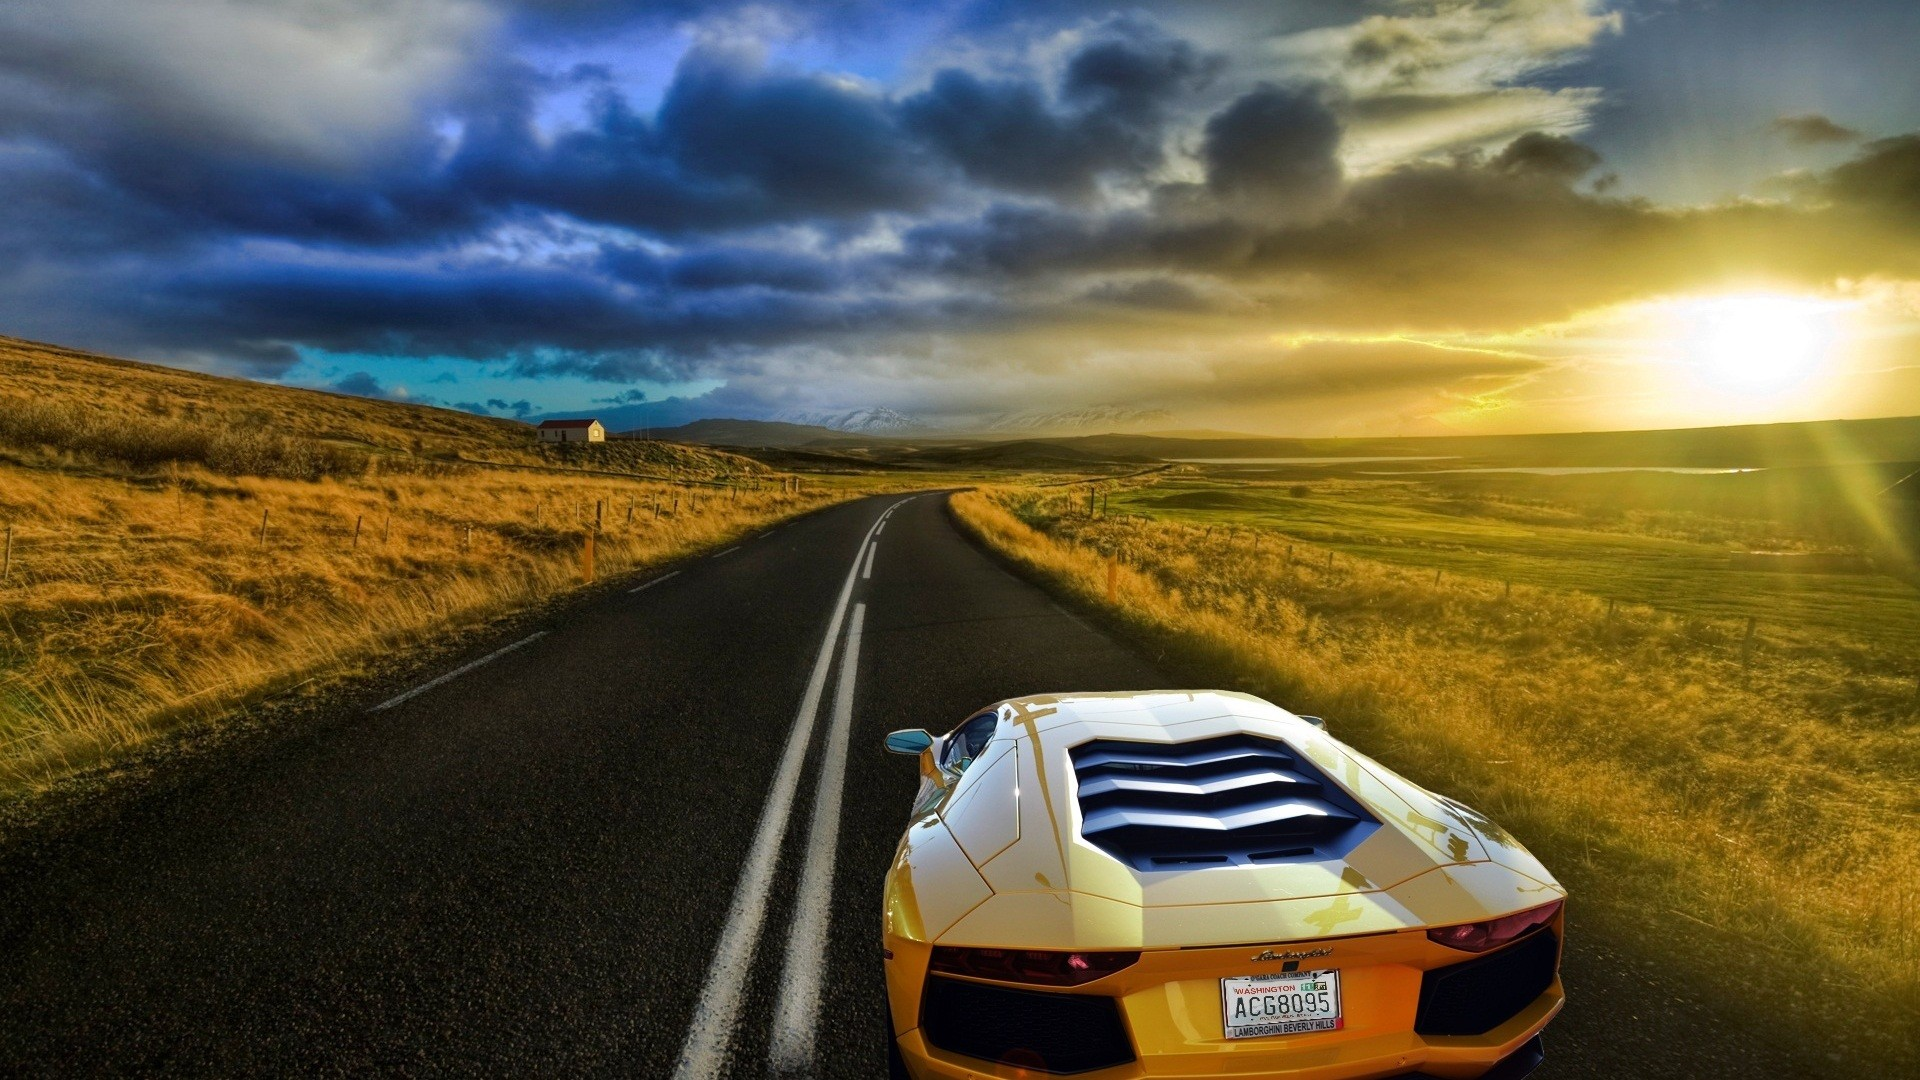 Fantastic Wallpaper Mac Lamborghini - Lamborghini-Wallpaper-24-1920x1080  HD_756668.jpg